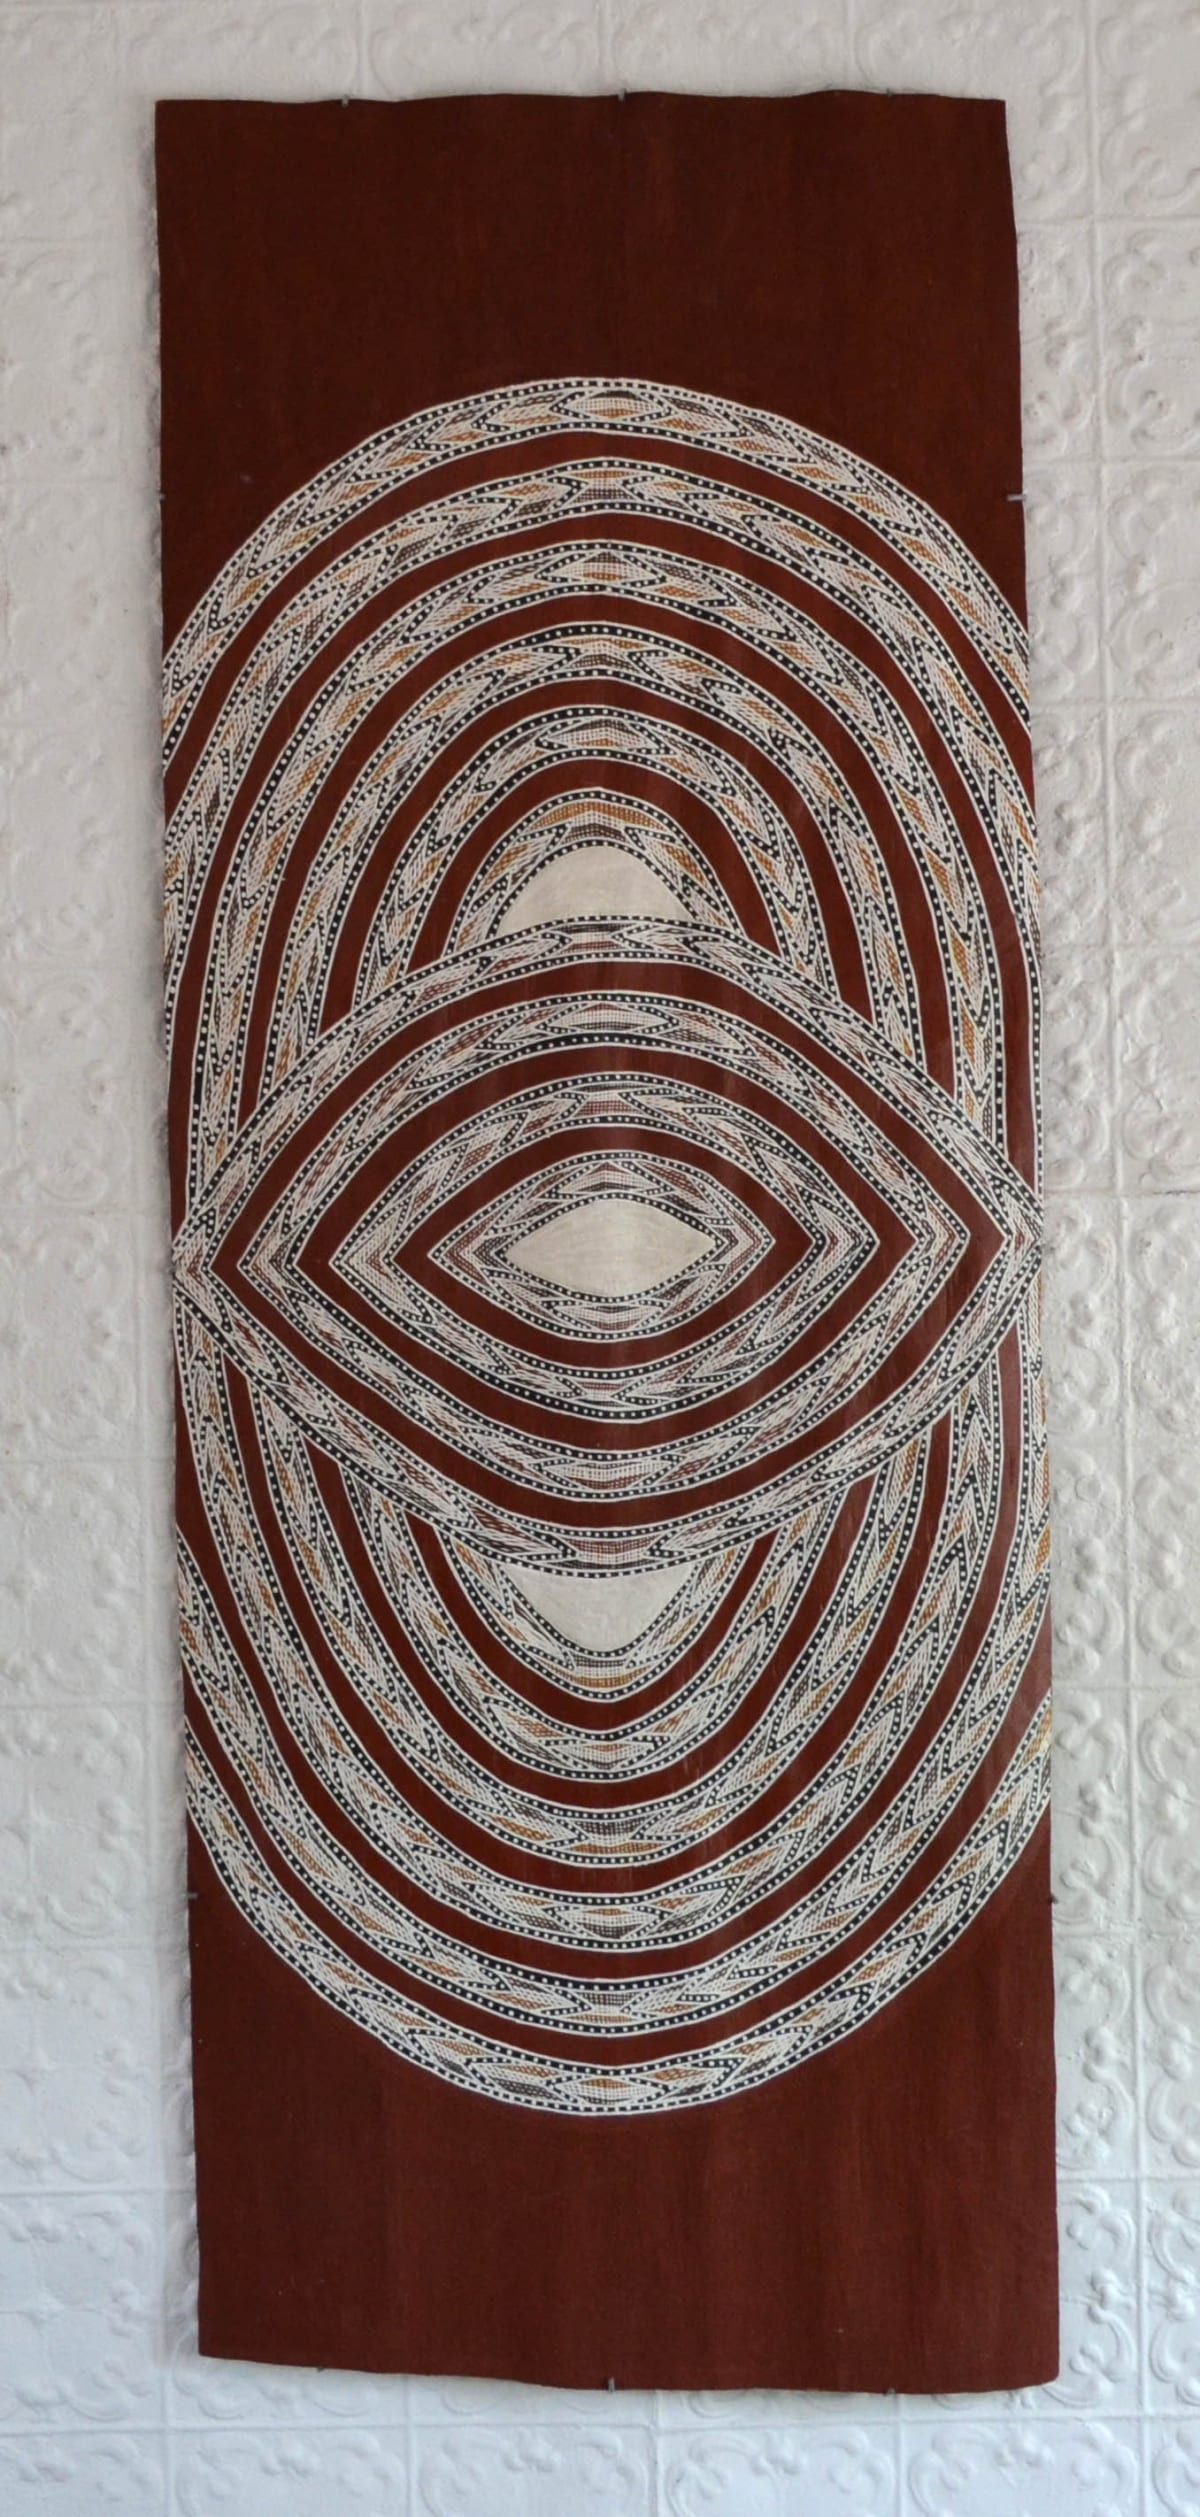 Ralwurrandji Wanambi Bamurrungu incised bark with sand and earth pigments 190 x 73 cm